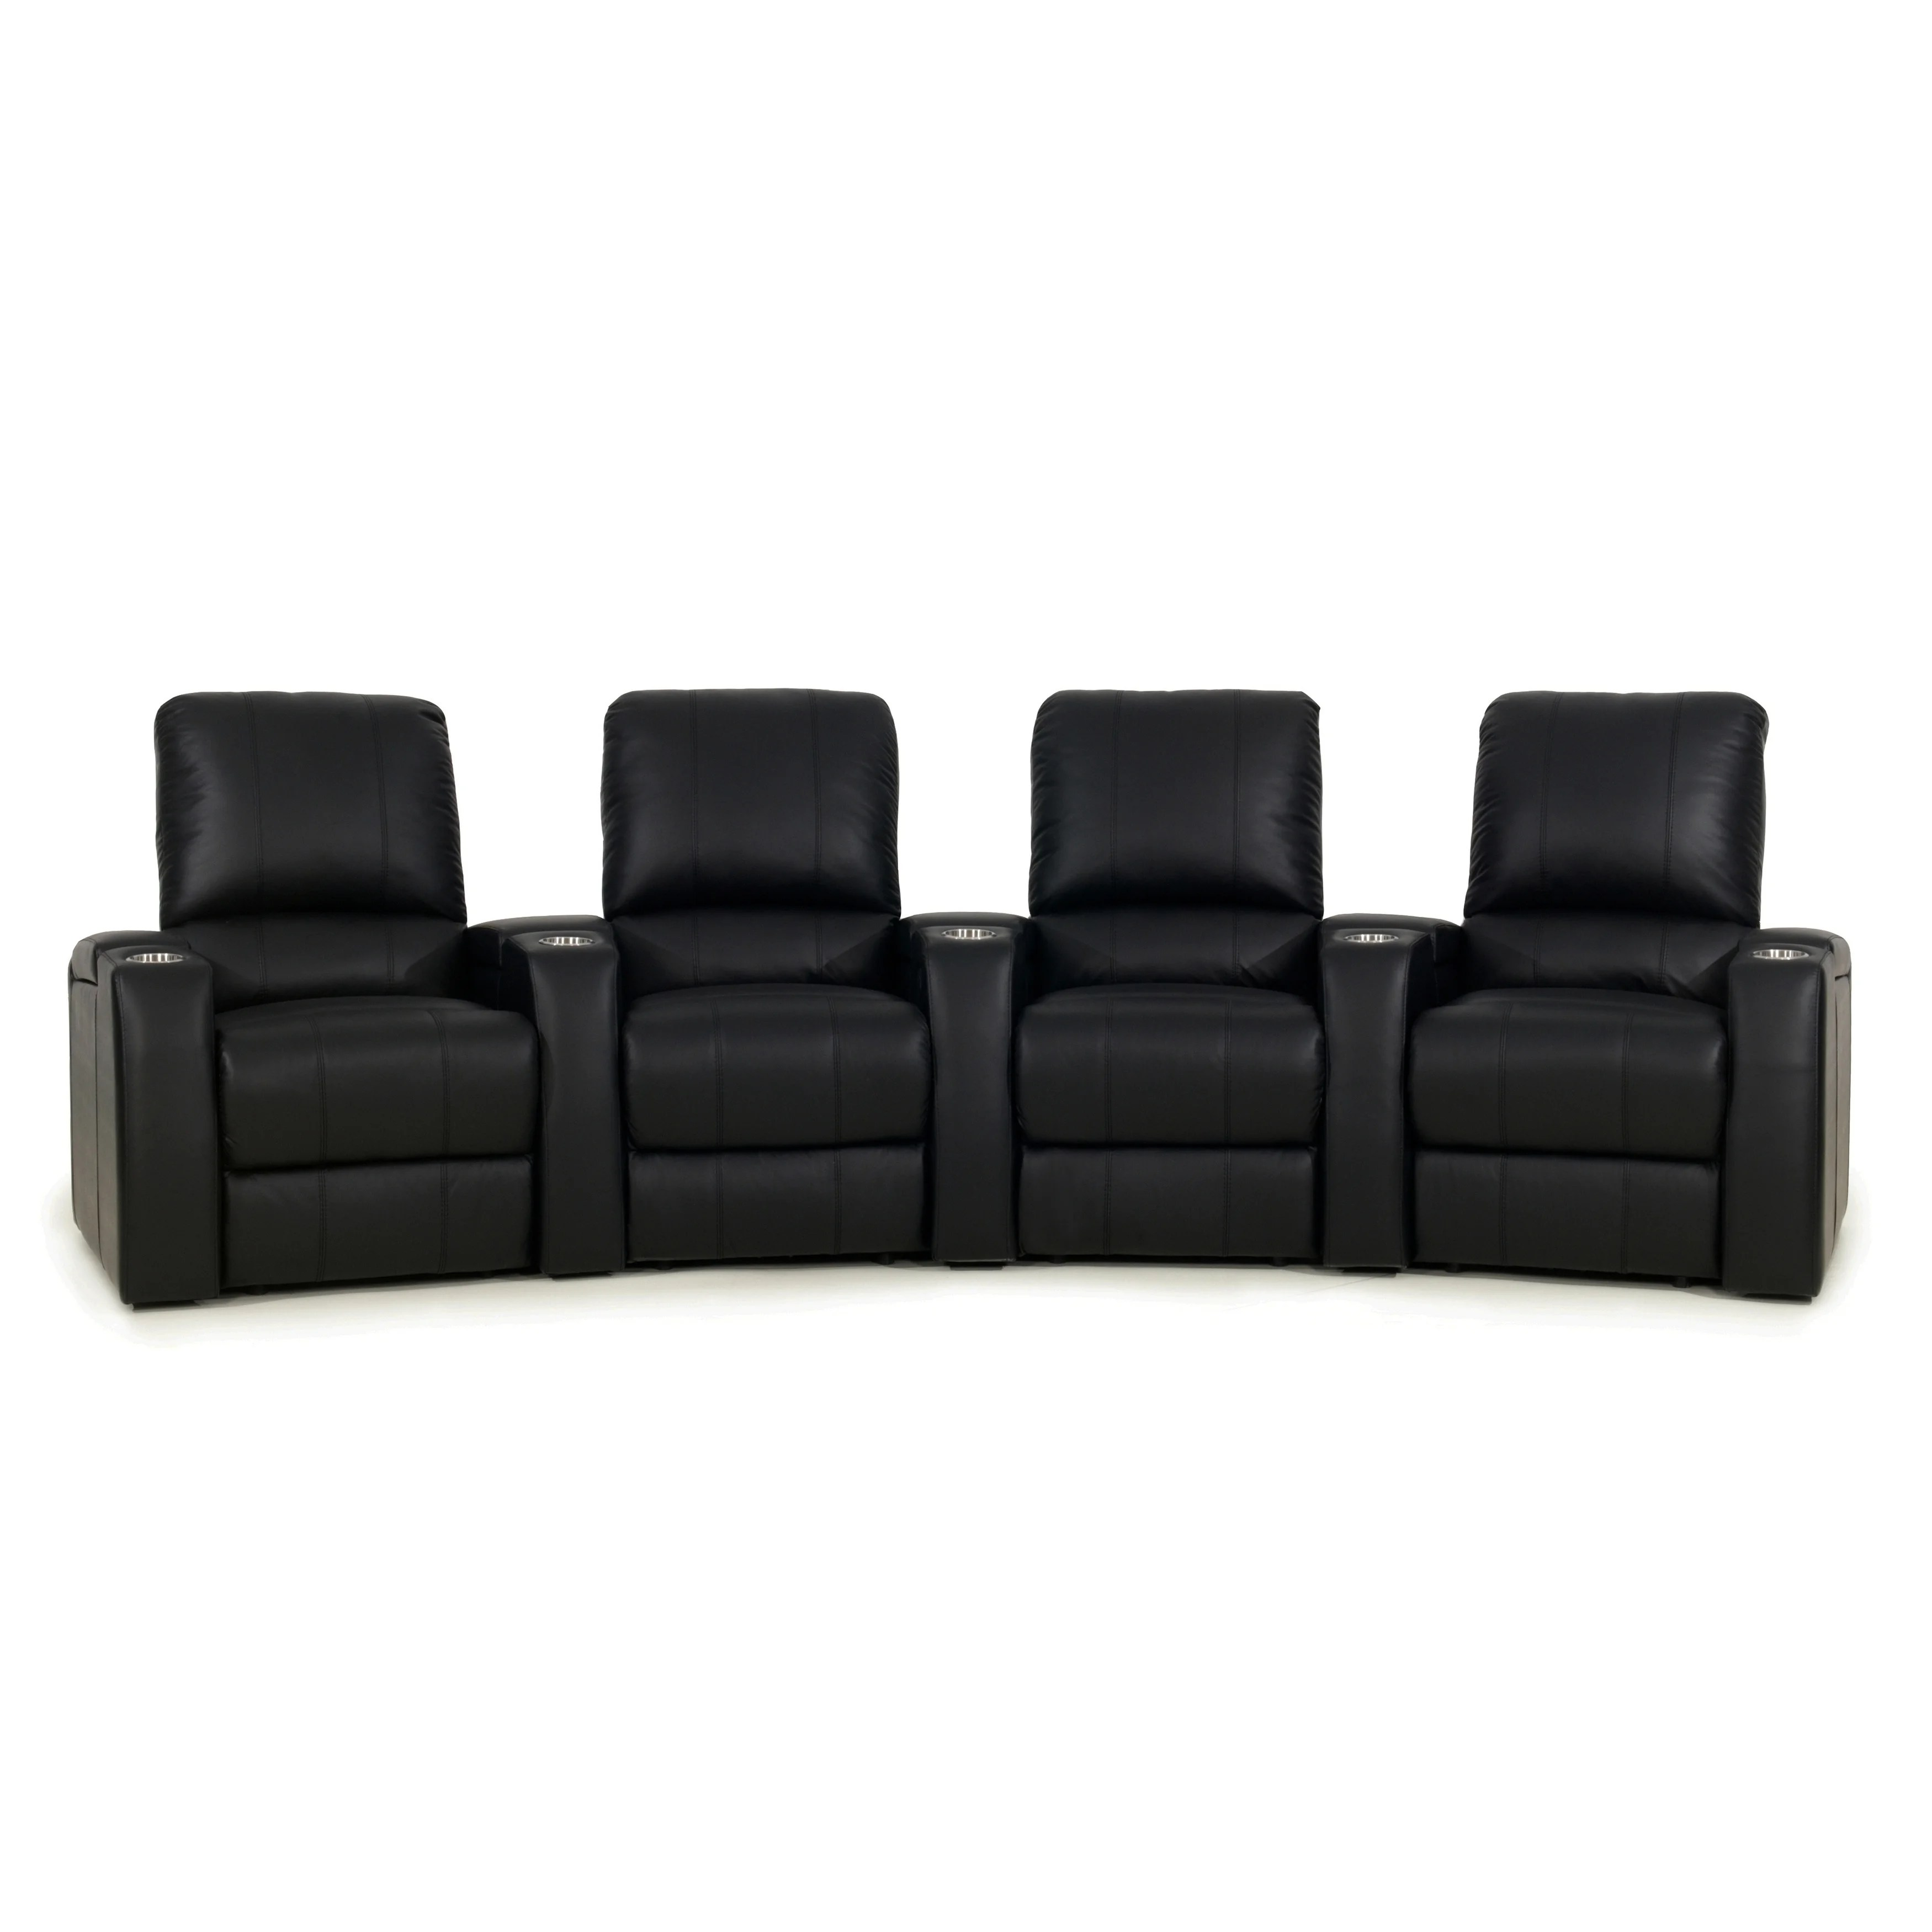 theater chairs best buy desk chair ball recliner and rocking recliners online at